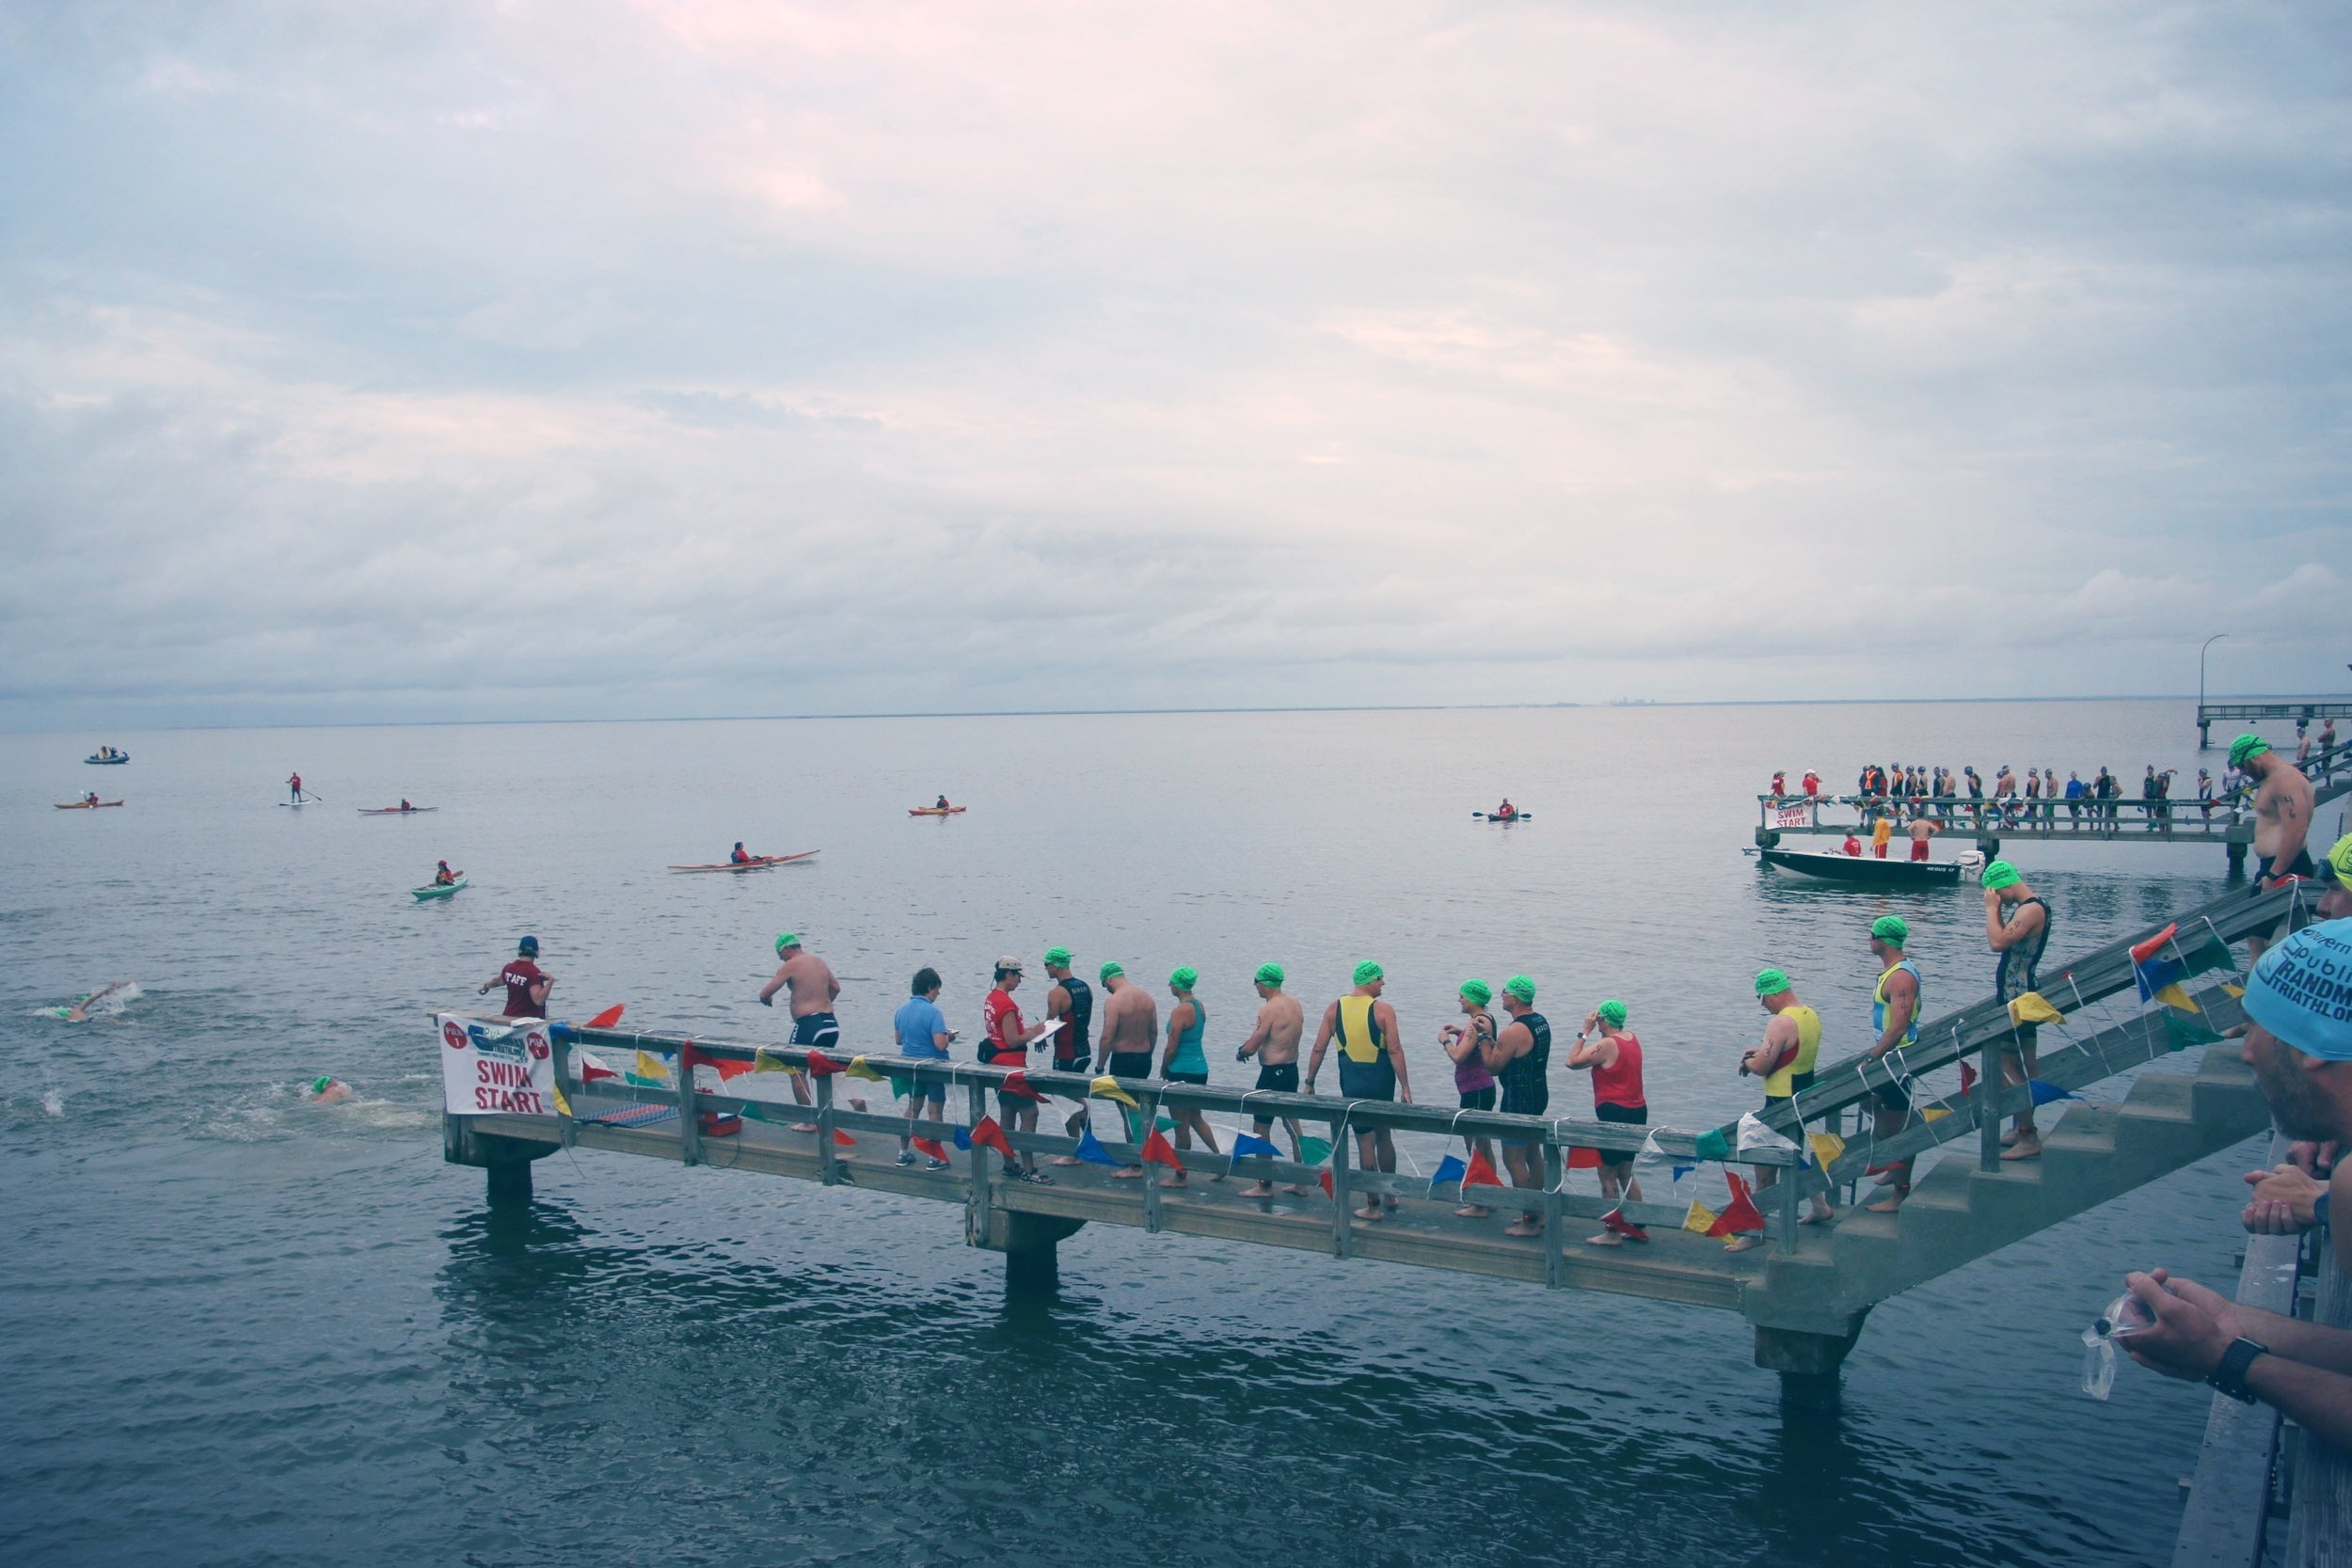 For the first time this year, we divided racers into two different finger piers to jump off to help speed up the swim start. It turned out great!